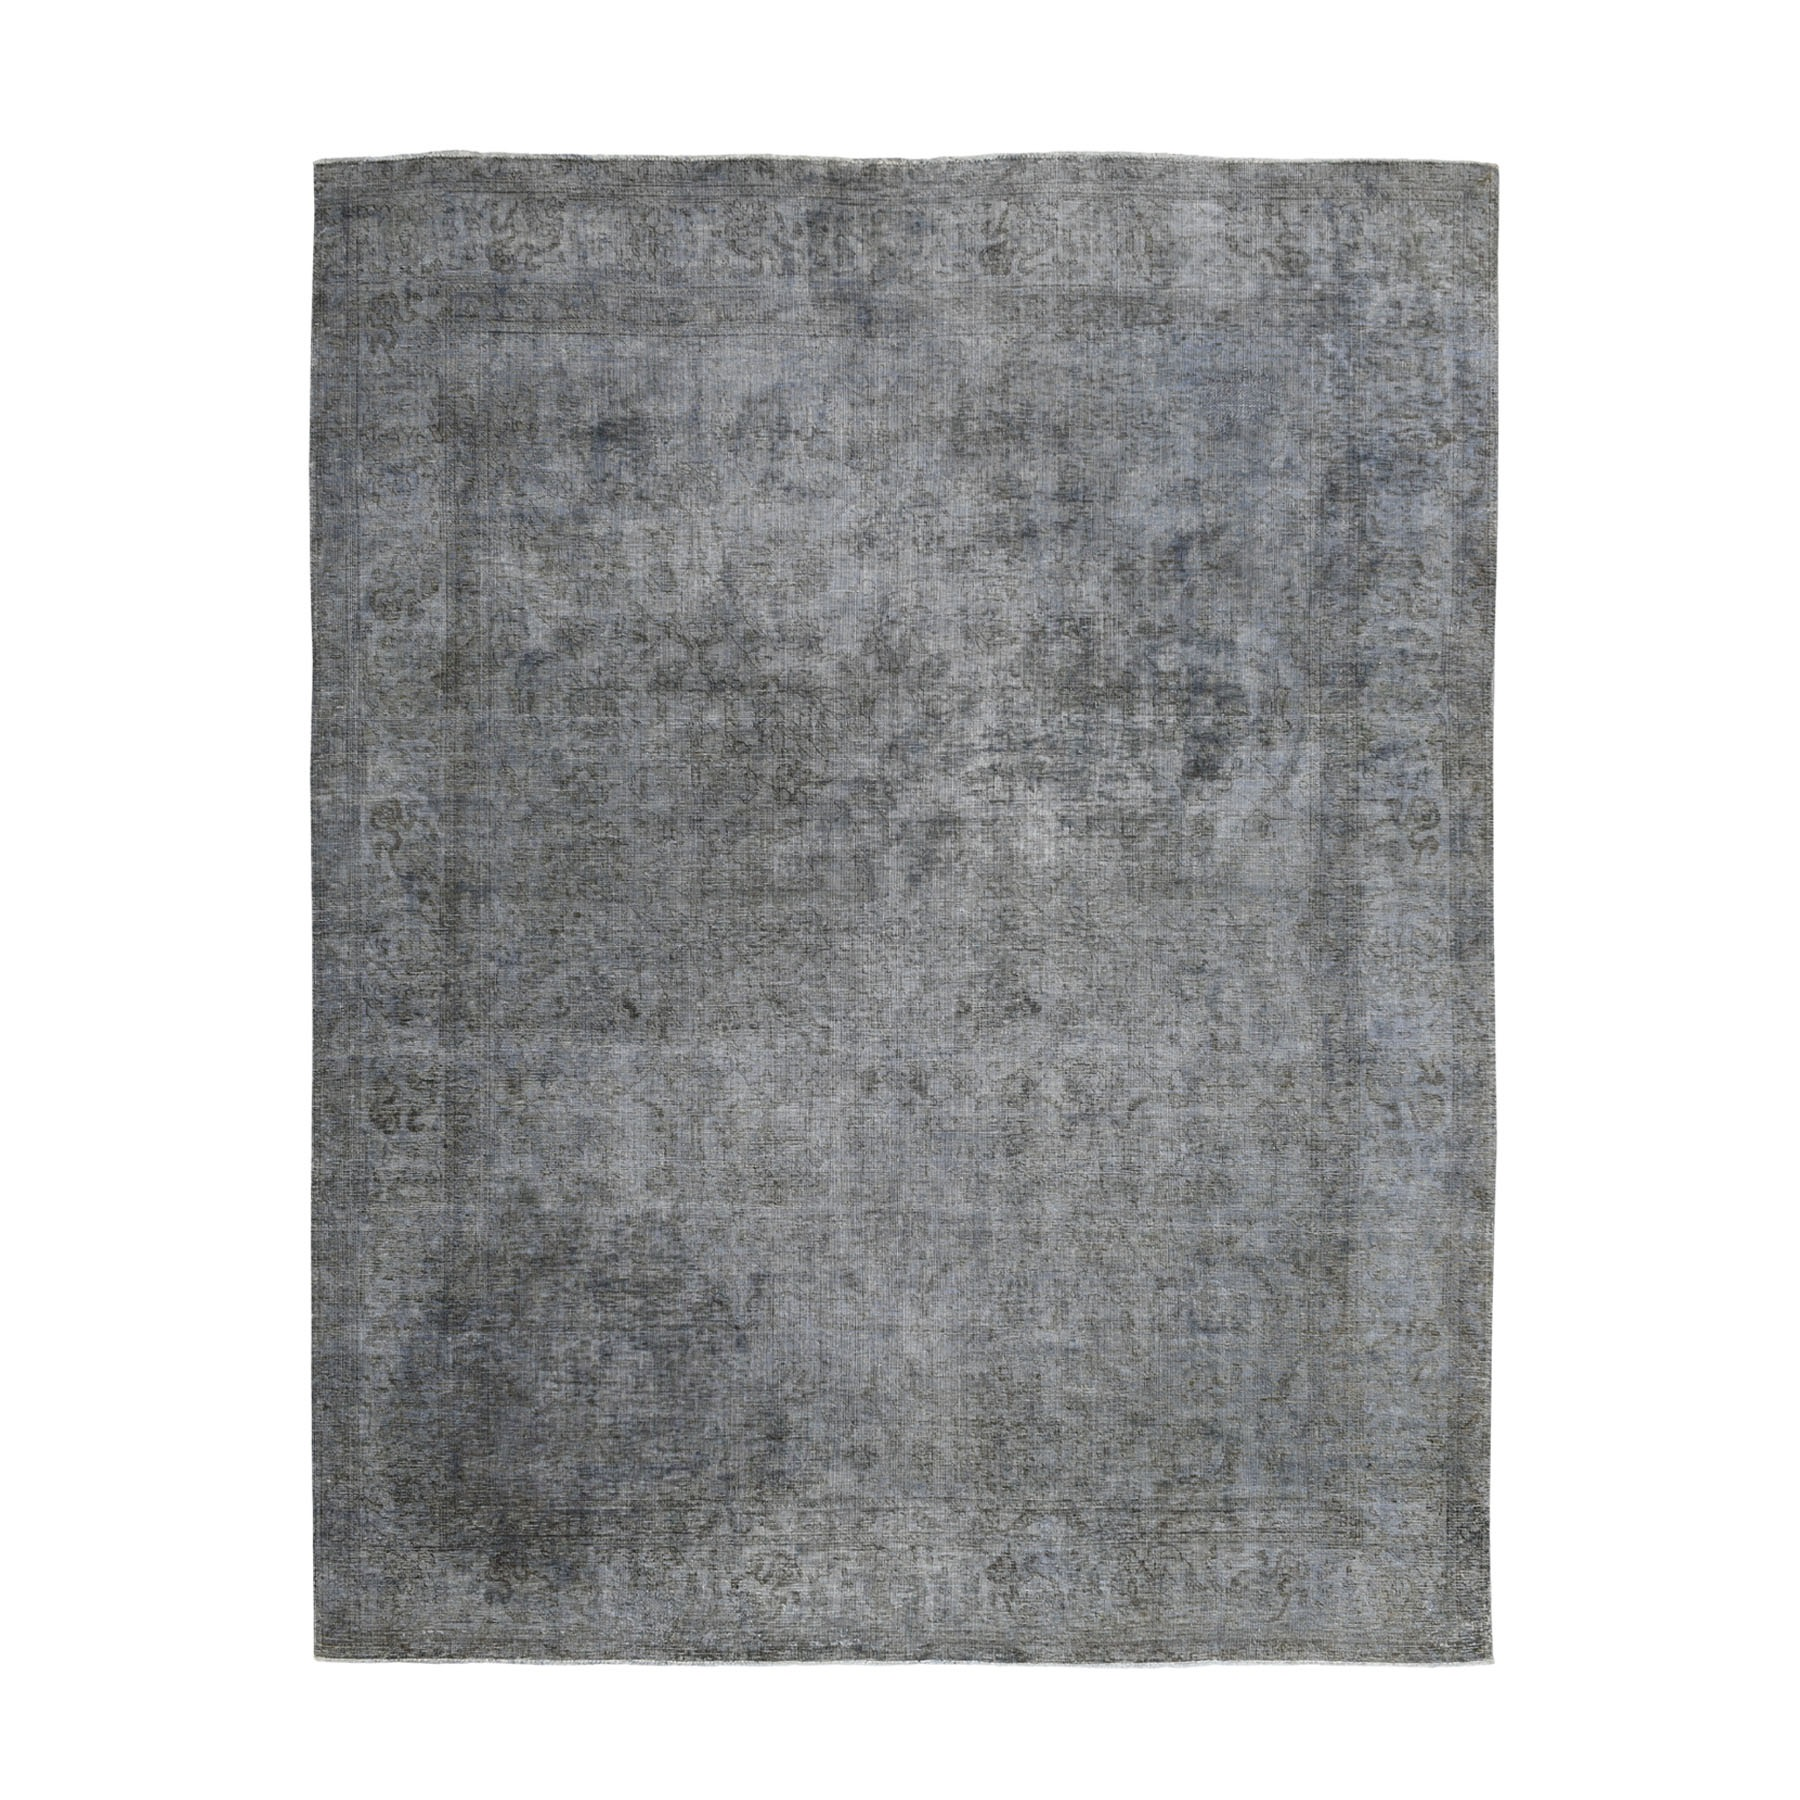 overdyed & vintage rugs LUV470466